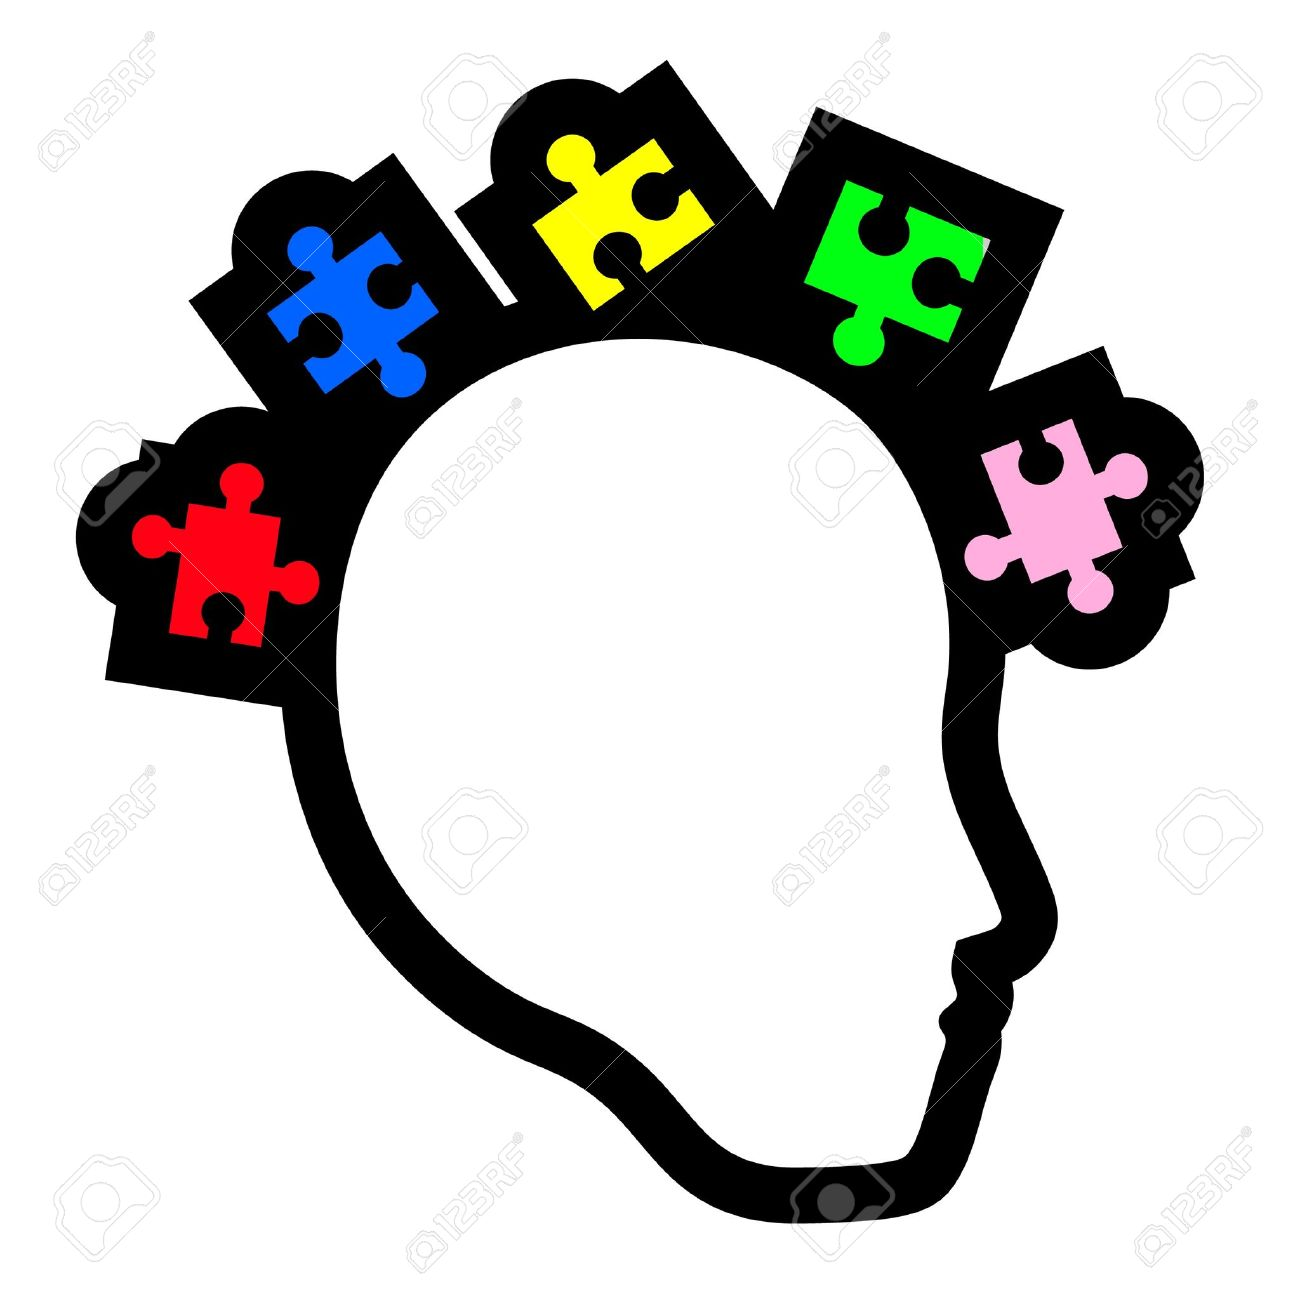 Philosophy clipart 2 » Clipart Station.